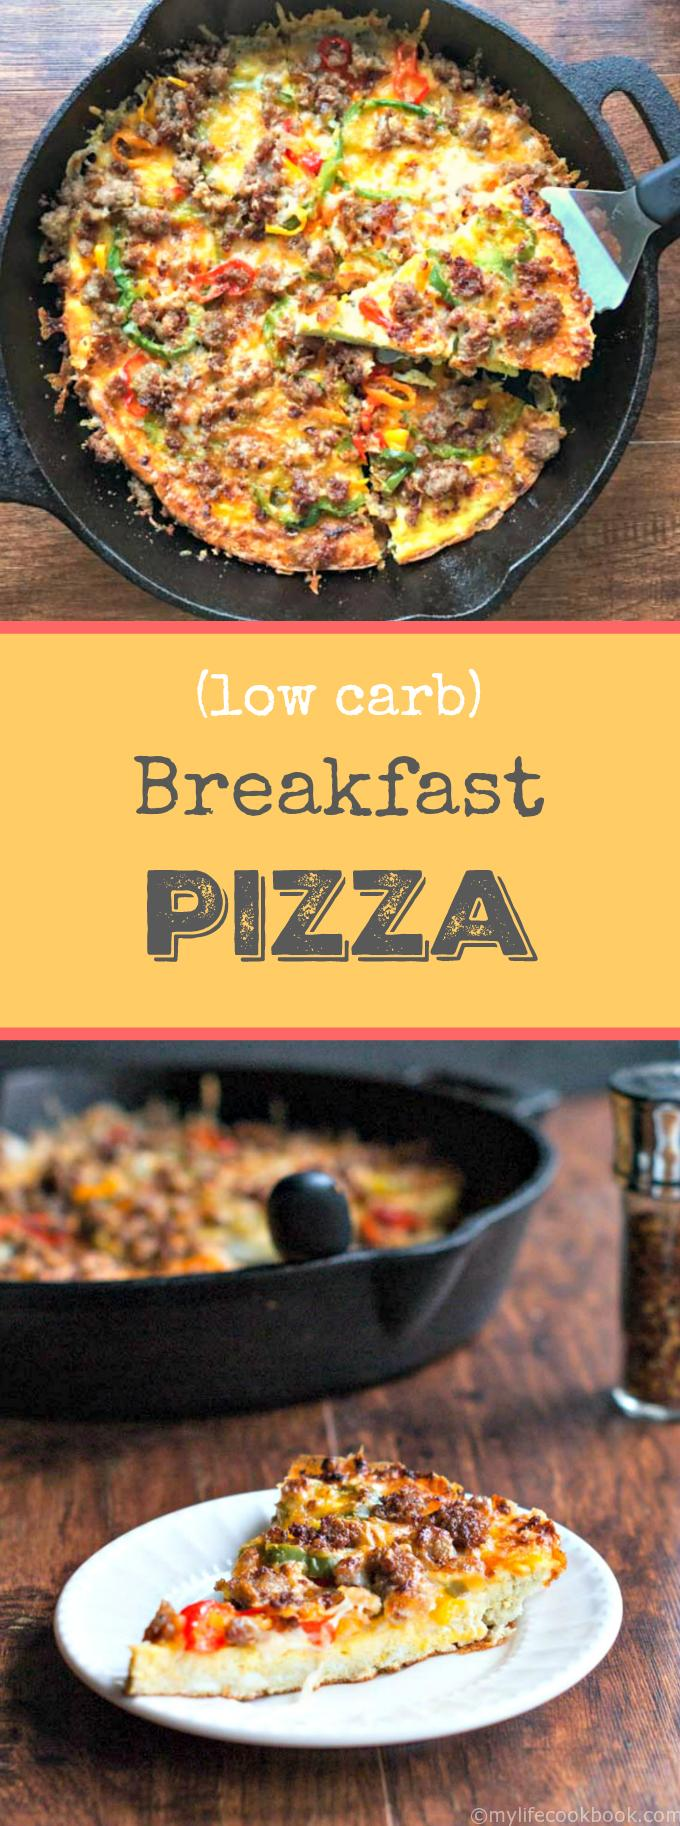 Low Carb Breakfast Pizza - eat for breakfast, lunch or dinner!